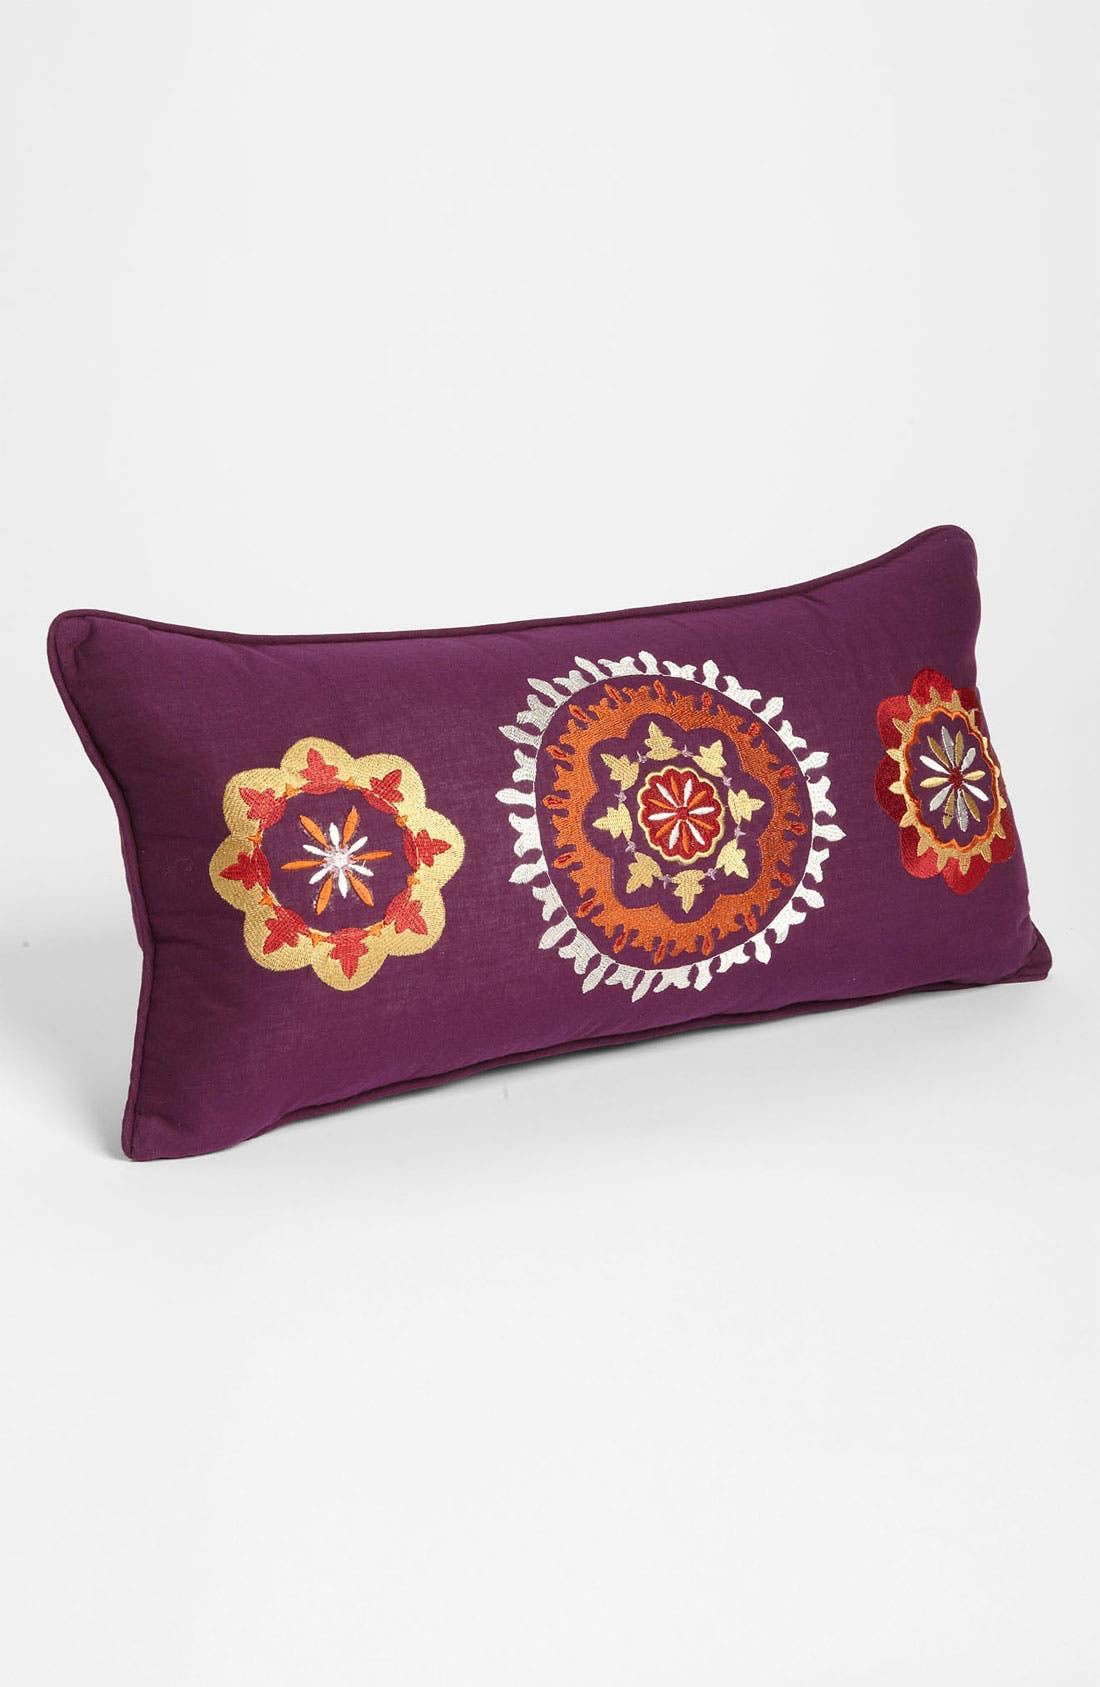 Alternate Image 1 Selected - Levtex 'Medallion' Pillow